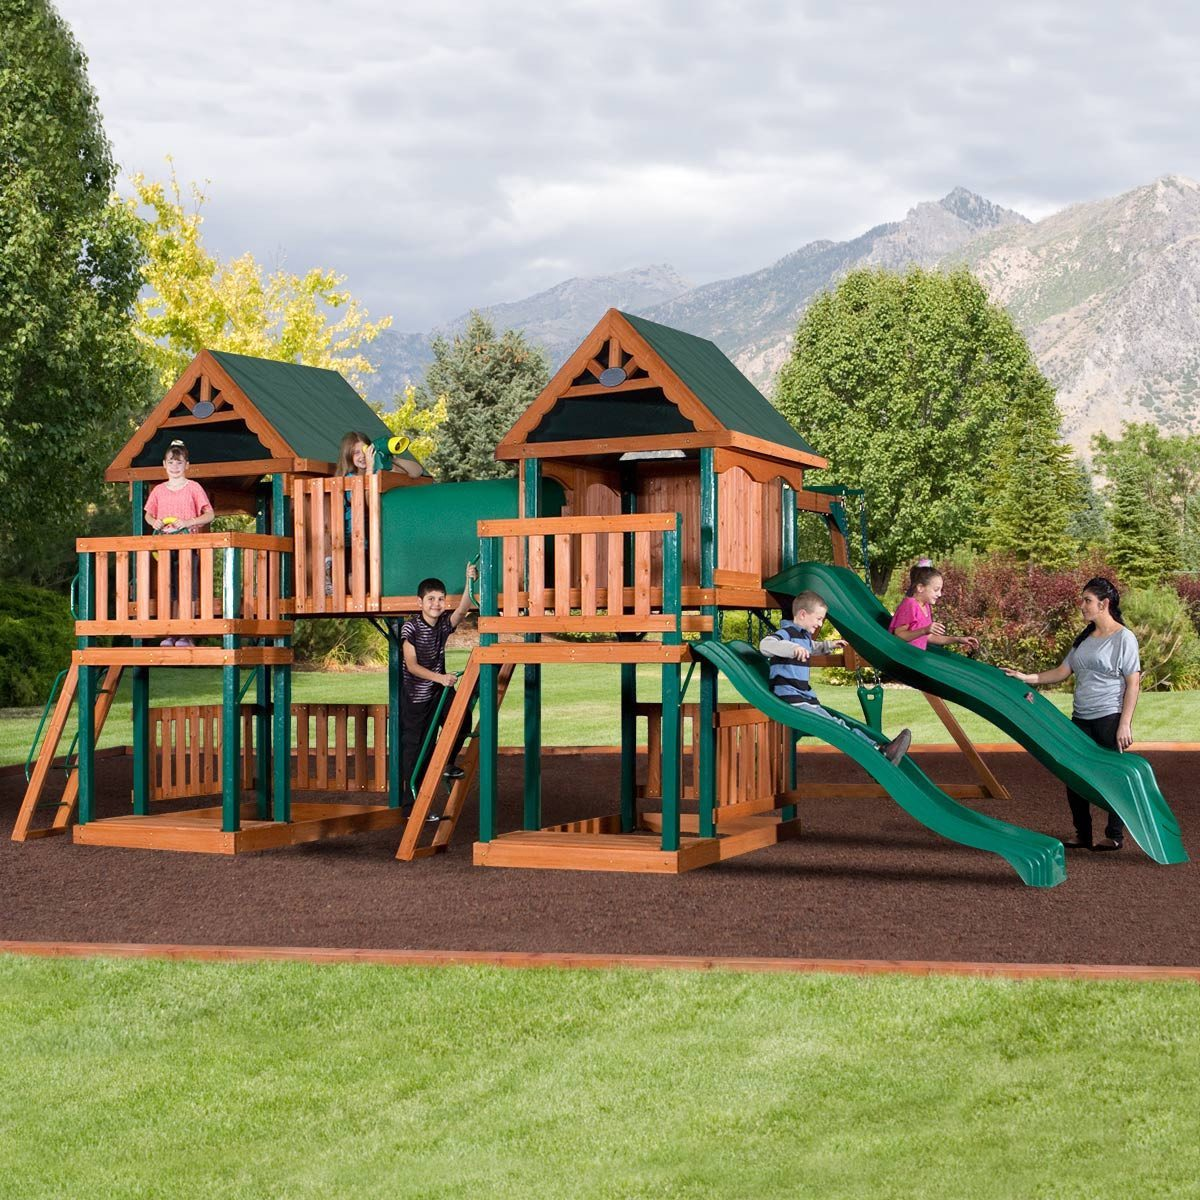 nla montana wooden swing set 1 jpg v u003d1457747943